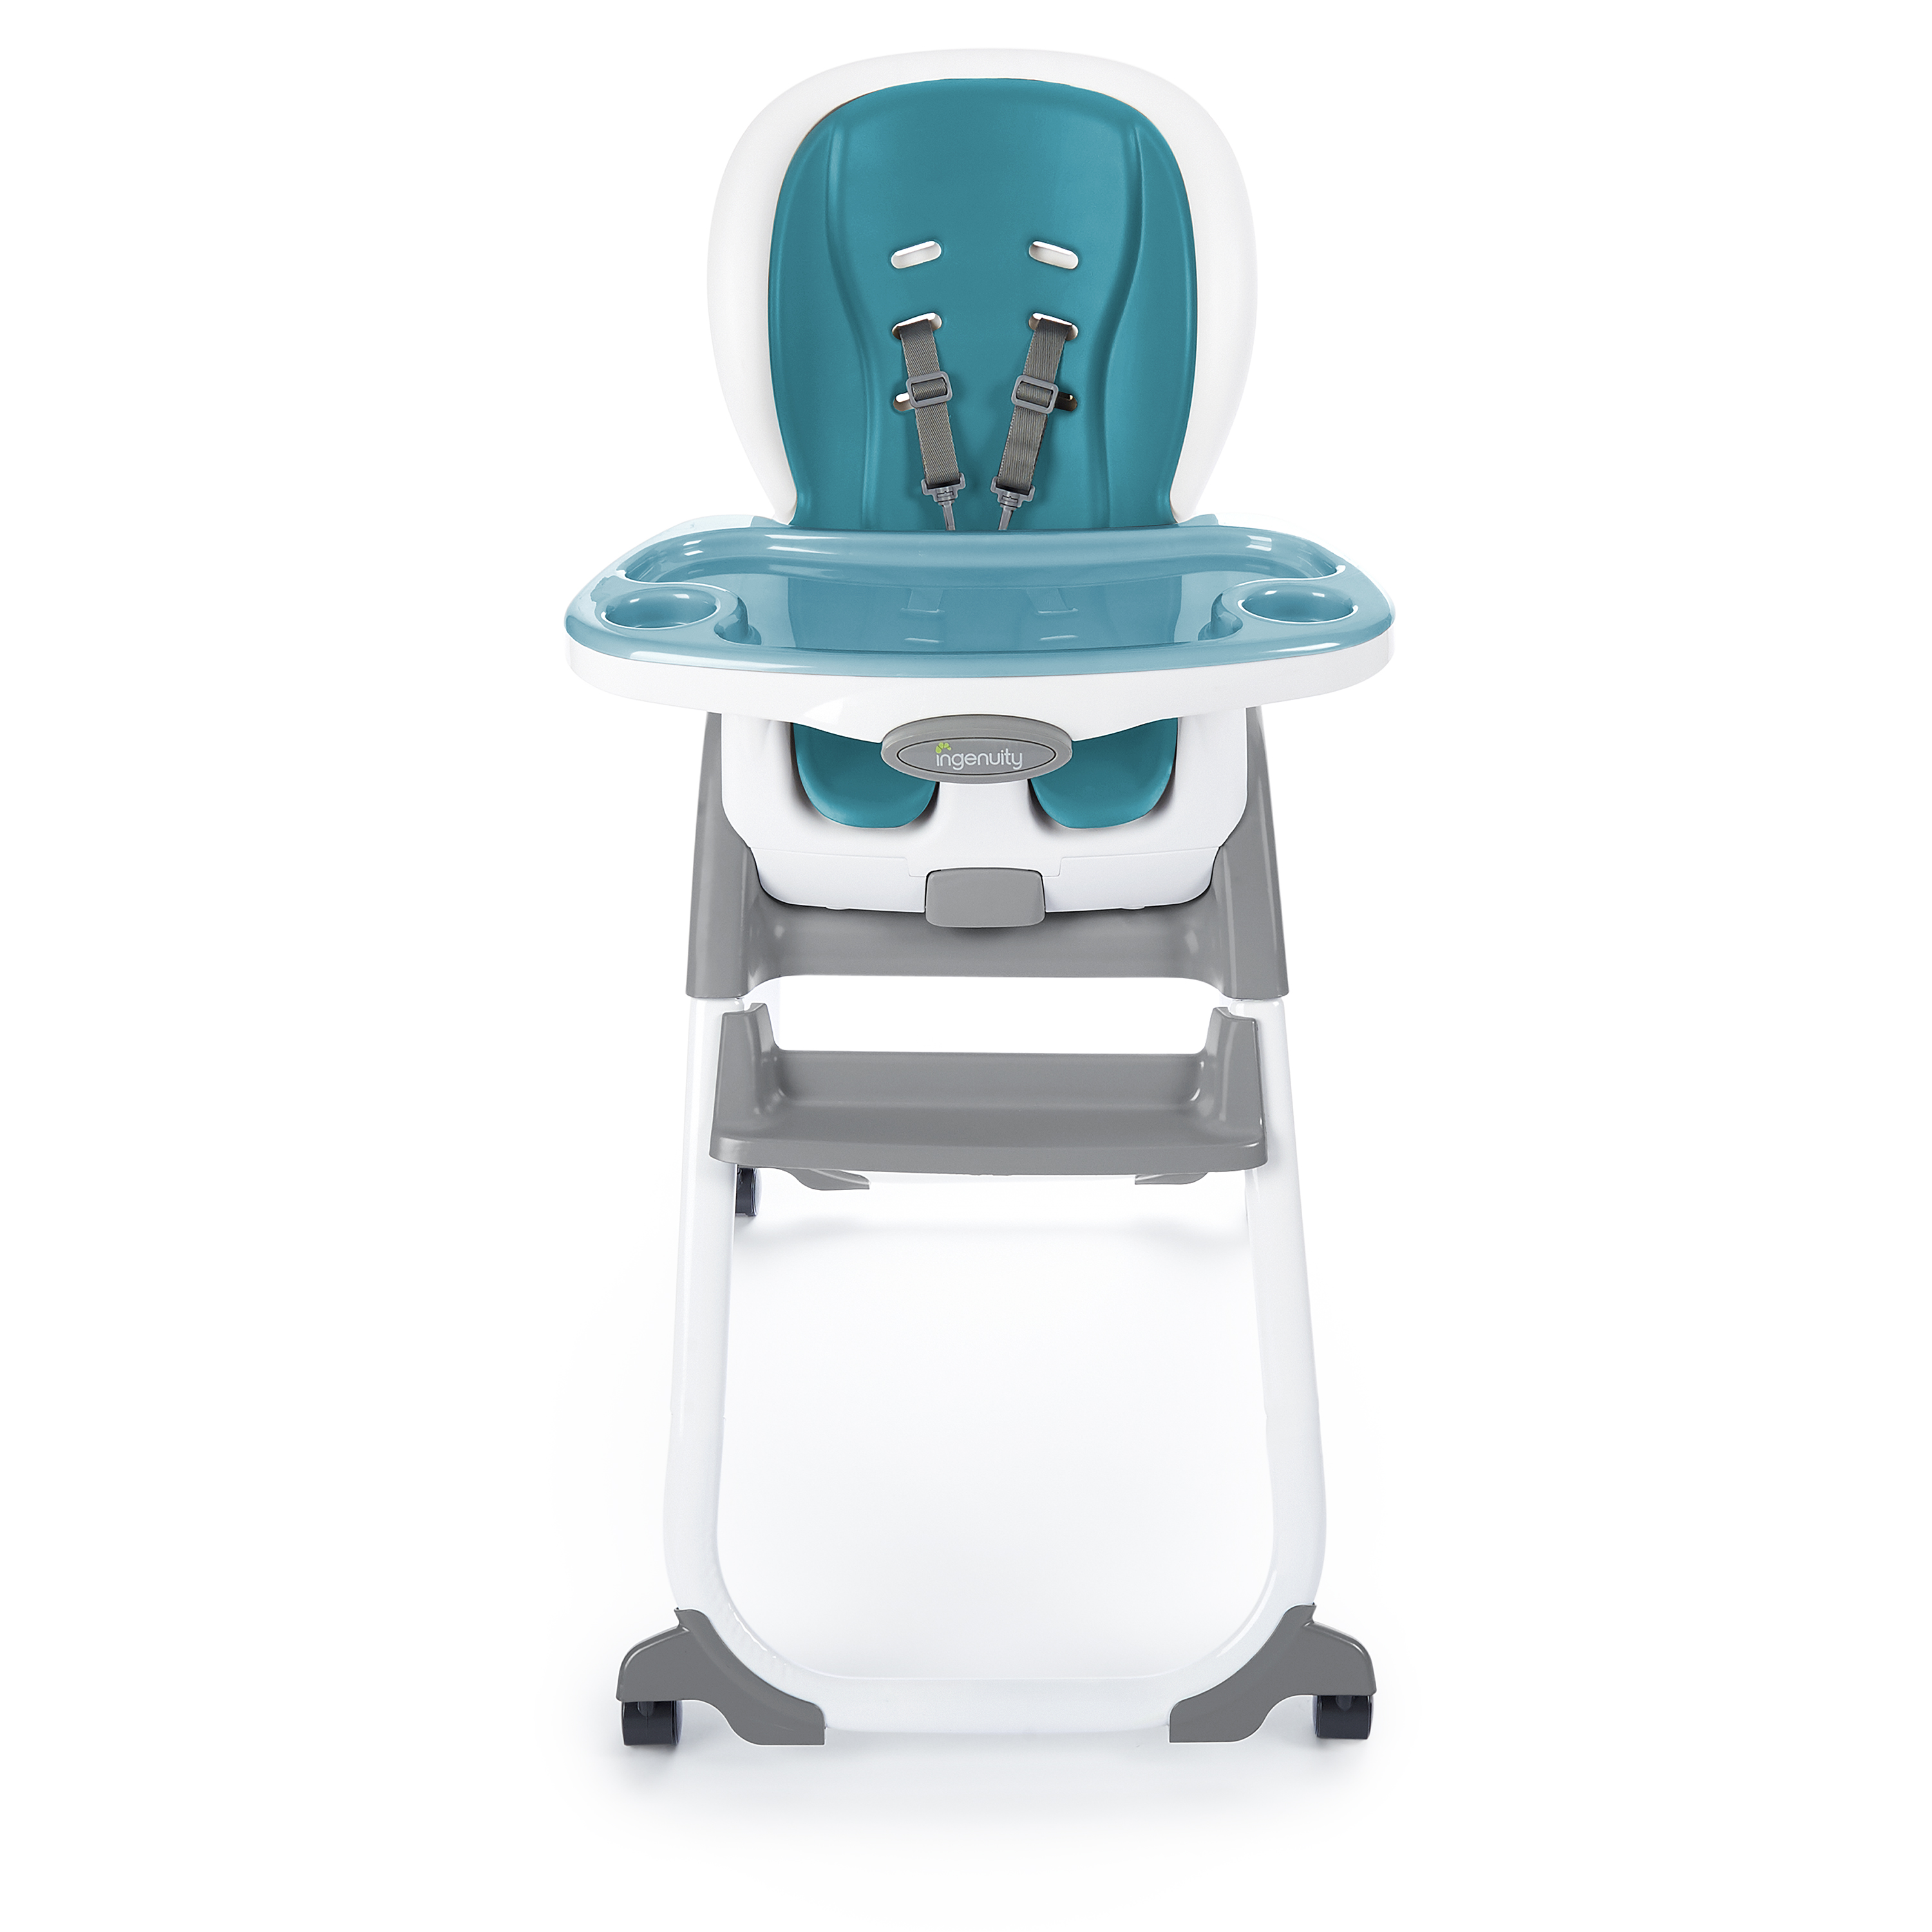 Ingenuity SmartClean Trio Elite 3-in-1 High Chair - Peacock